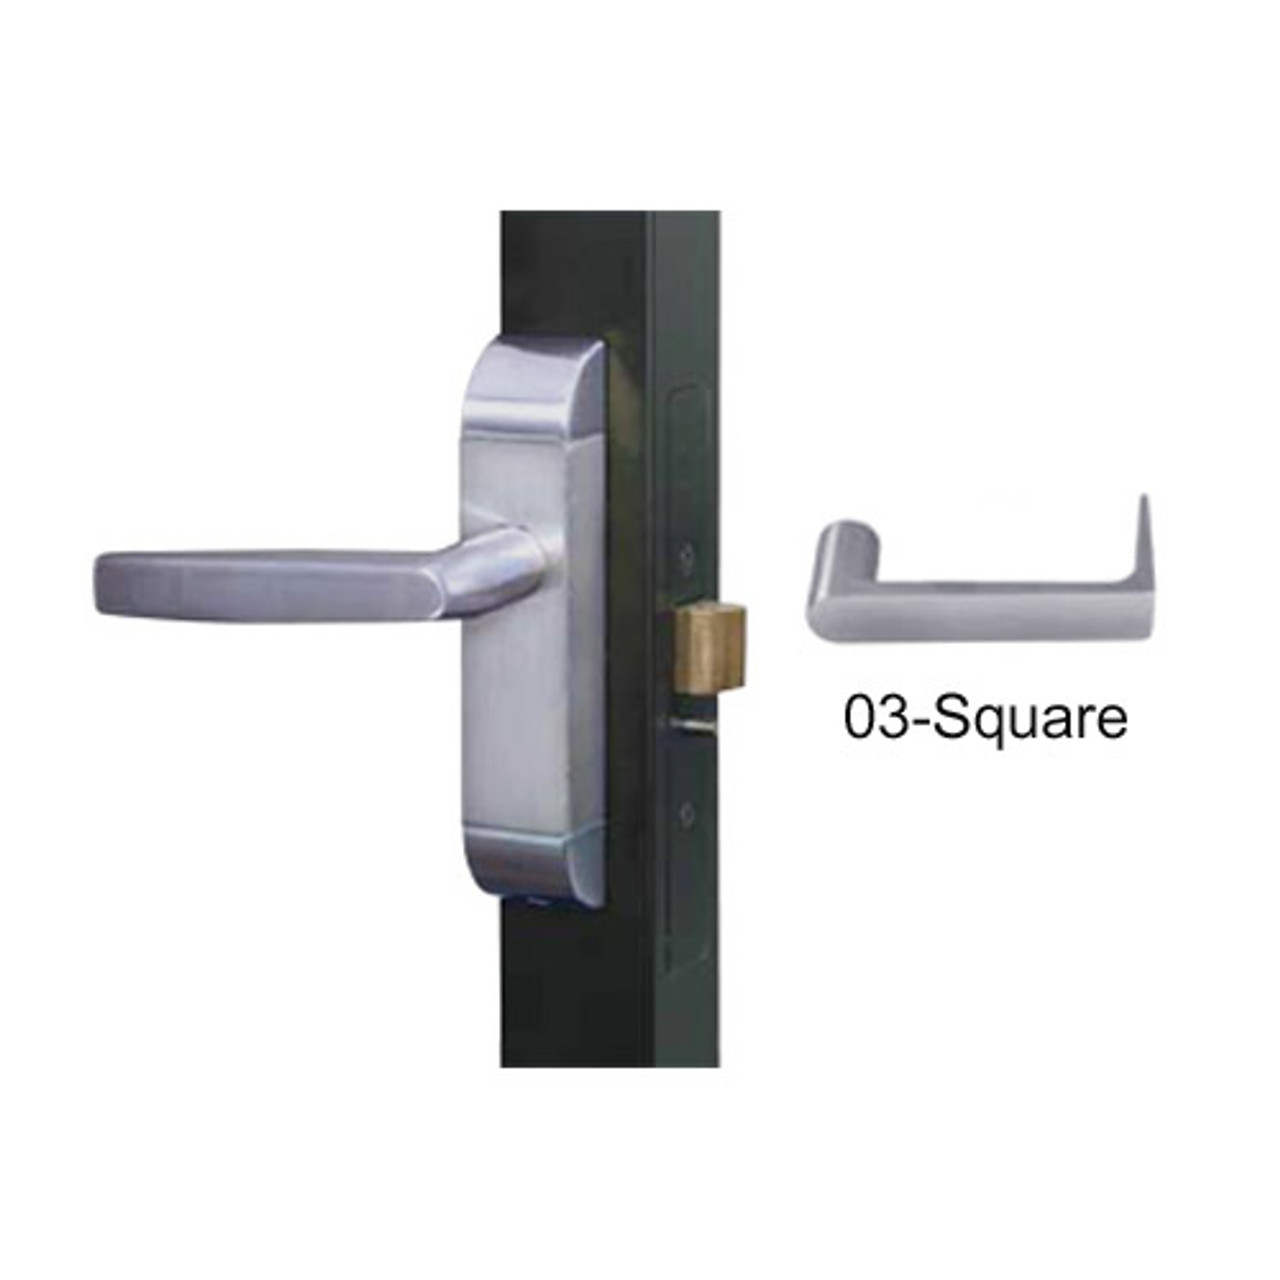 4600-03-642-US32D Adams Rite Heavy Duty Square Deadlatch Handles in Satin Stainless Finish